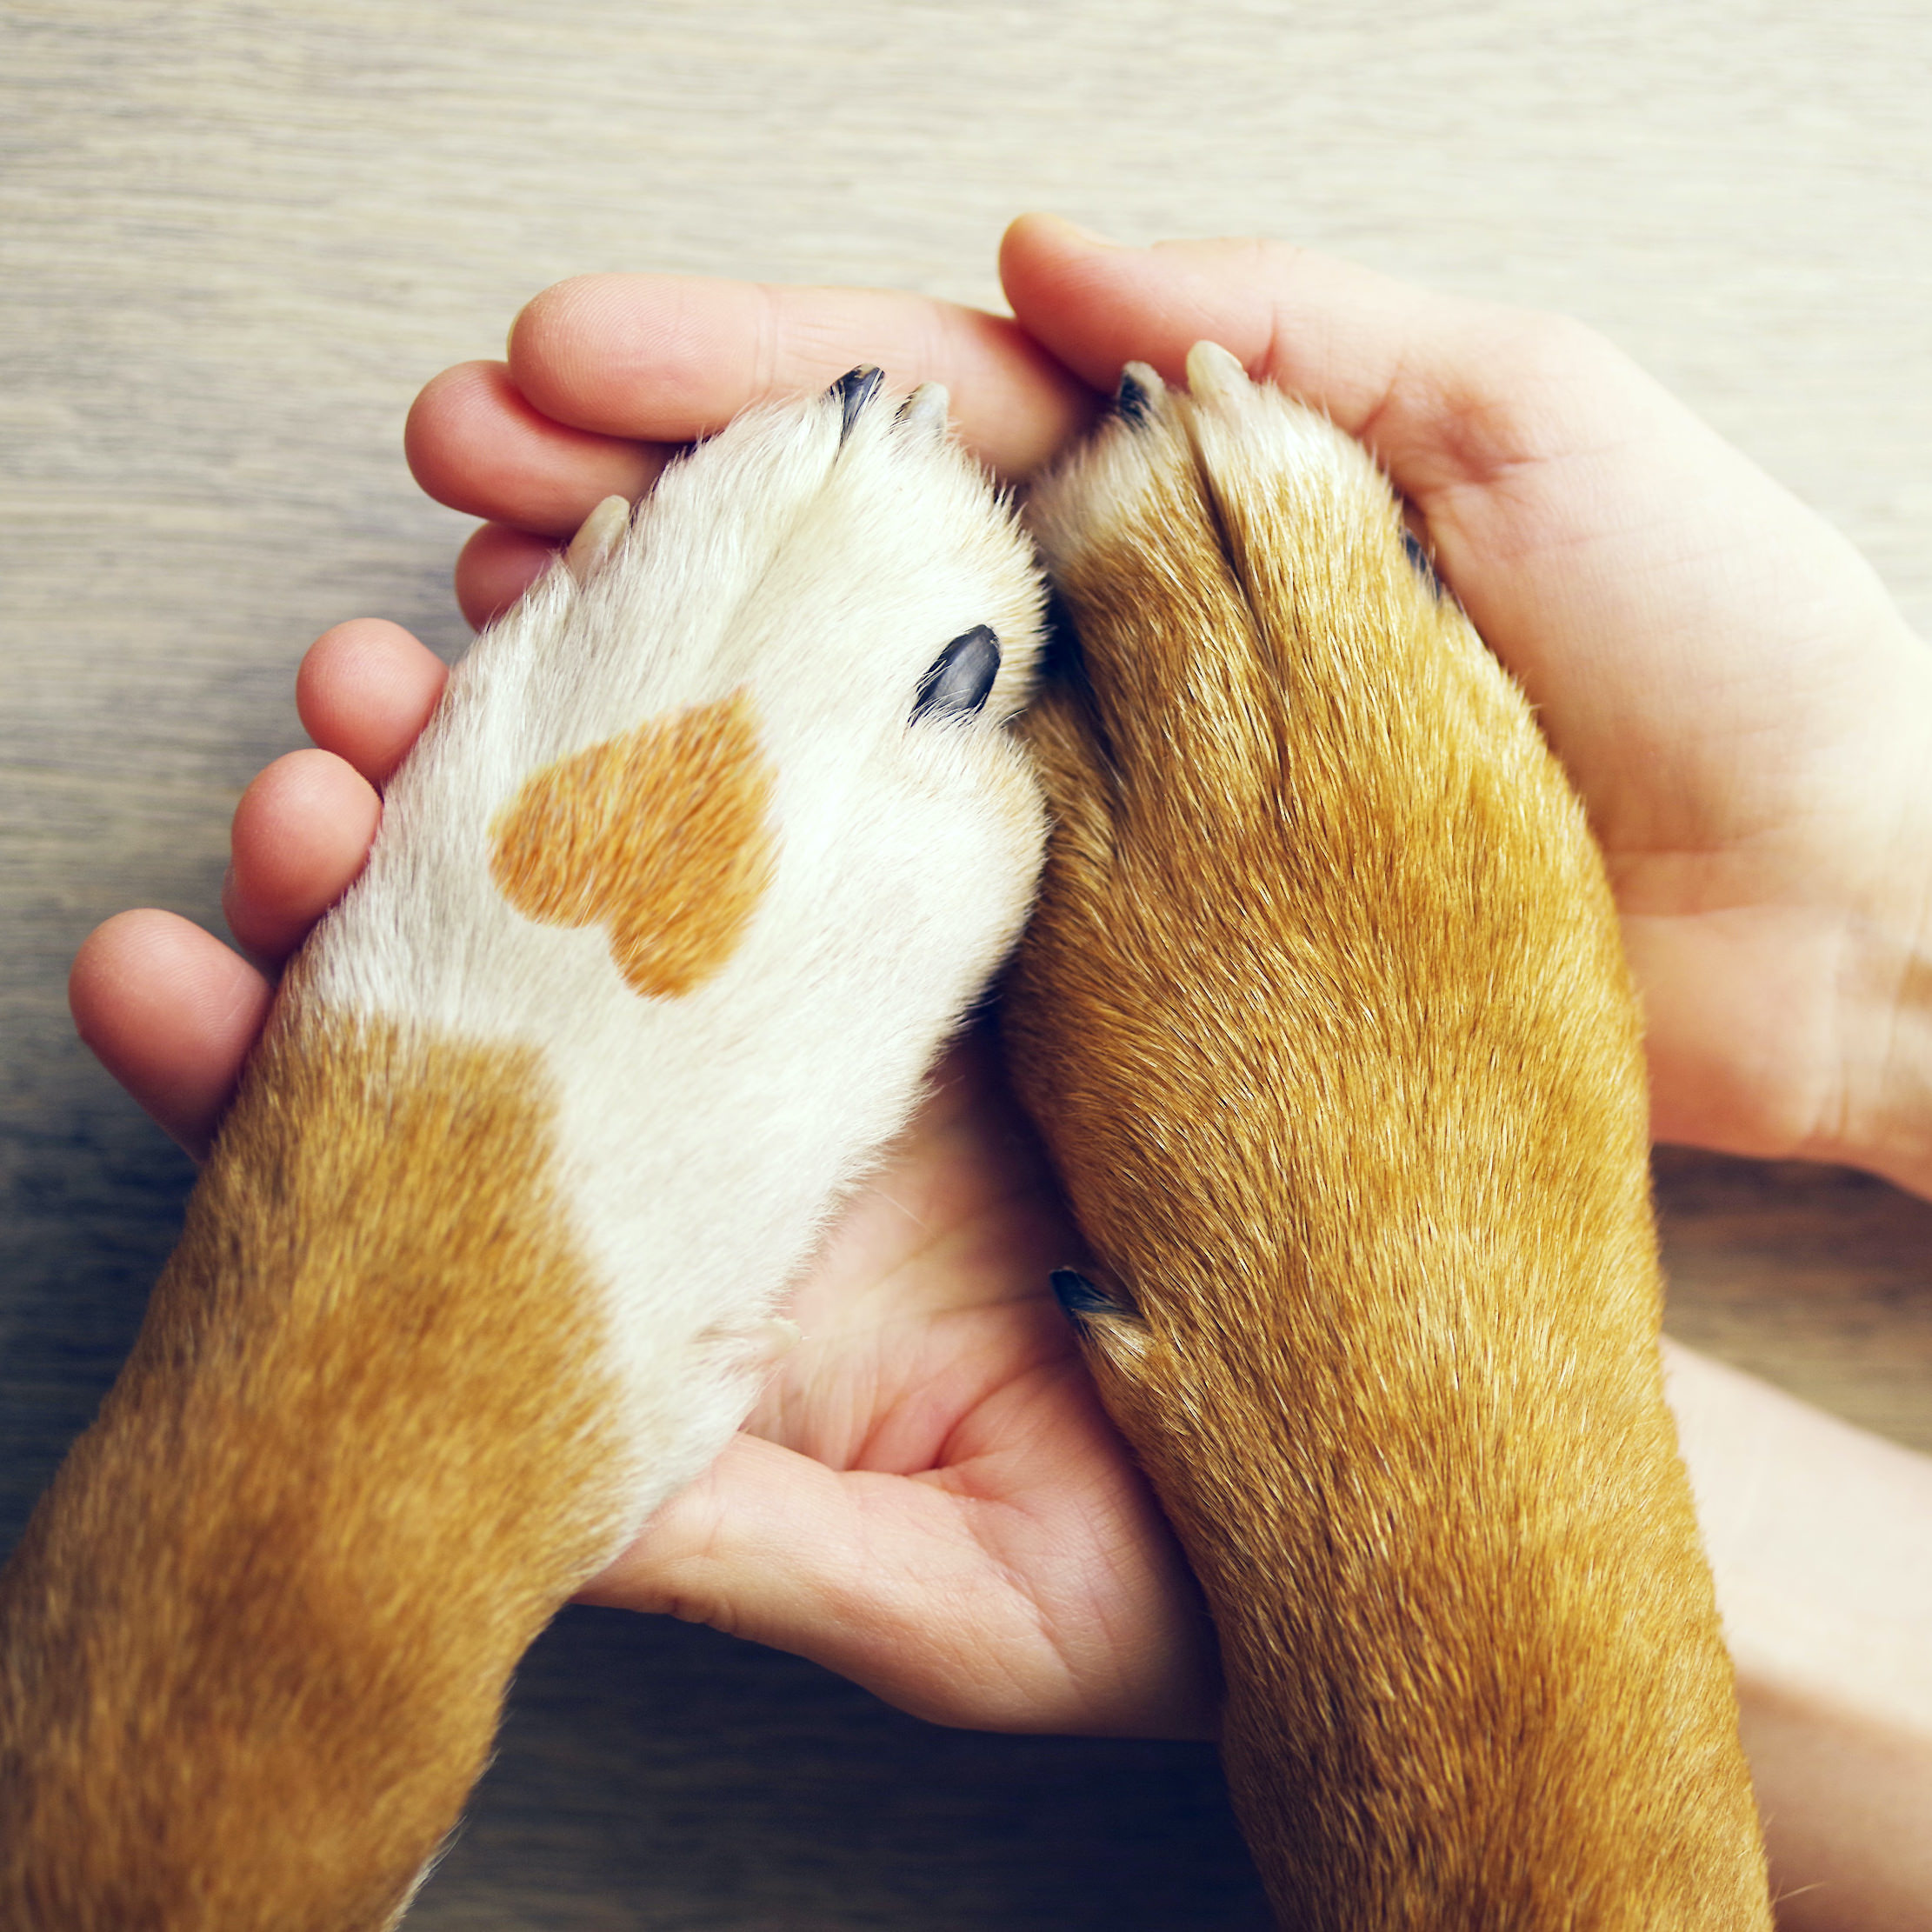 Hands holding dog paws